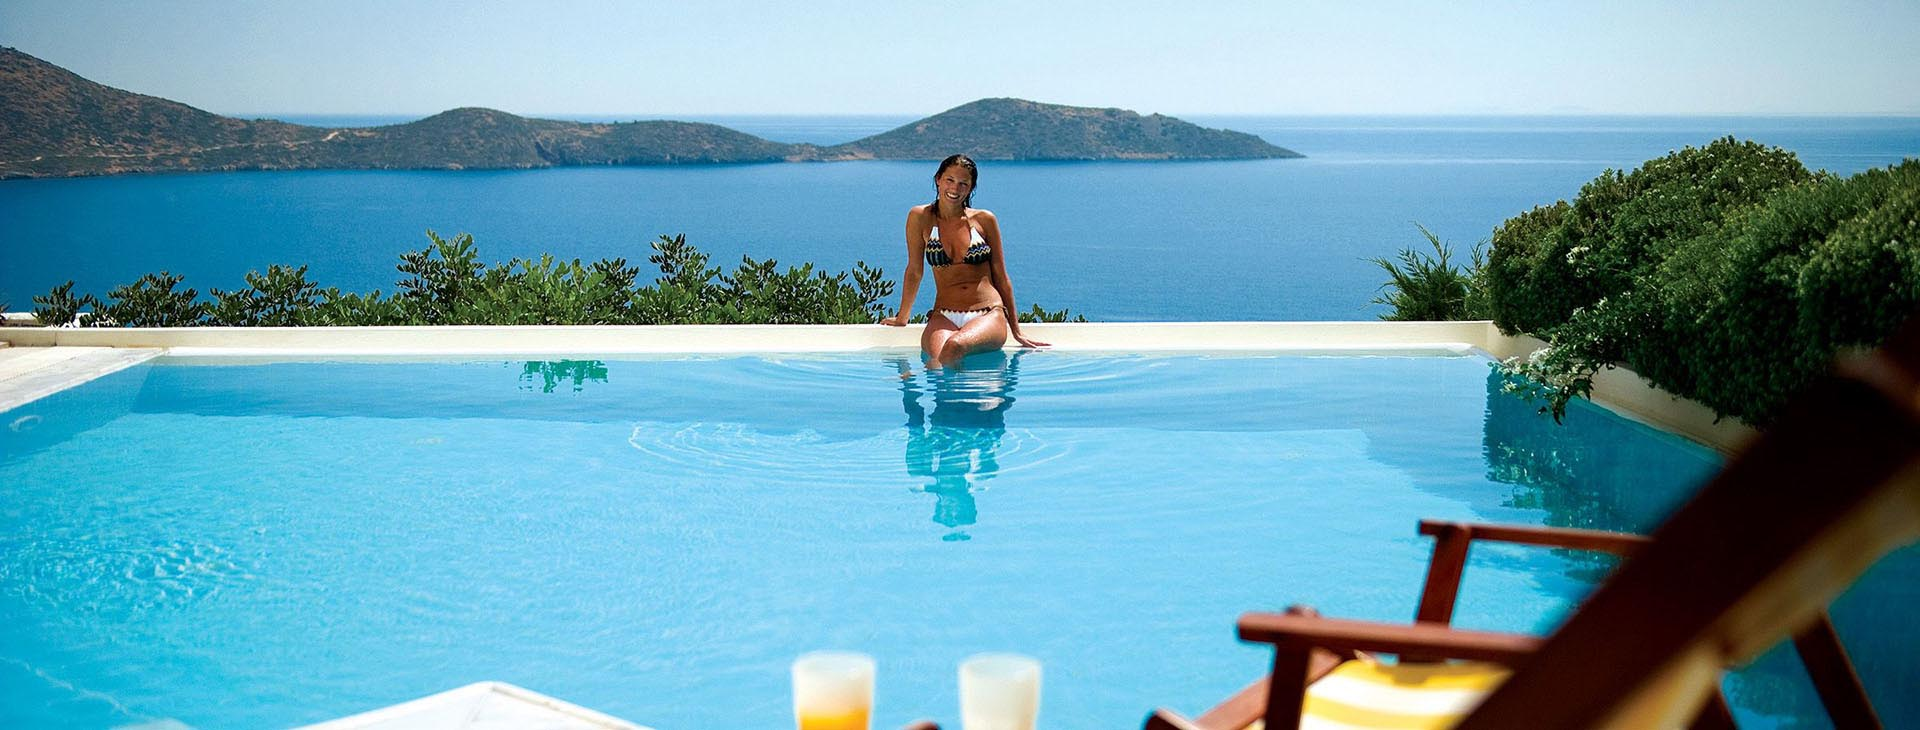 Elounda Gulf Villas & Suites - Private Pool Villa